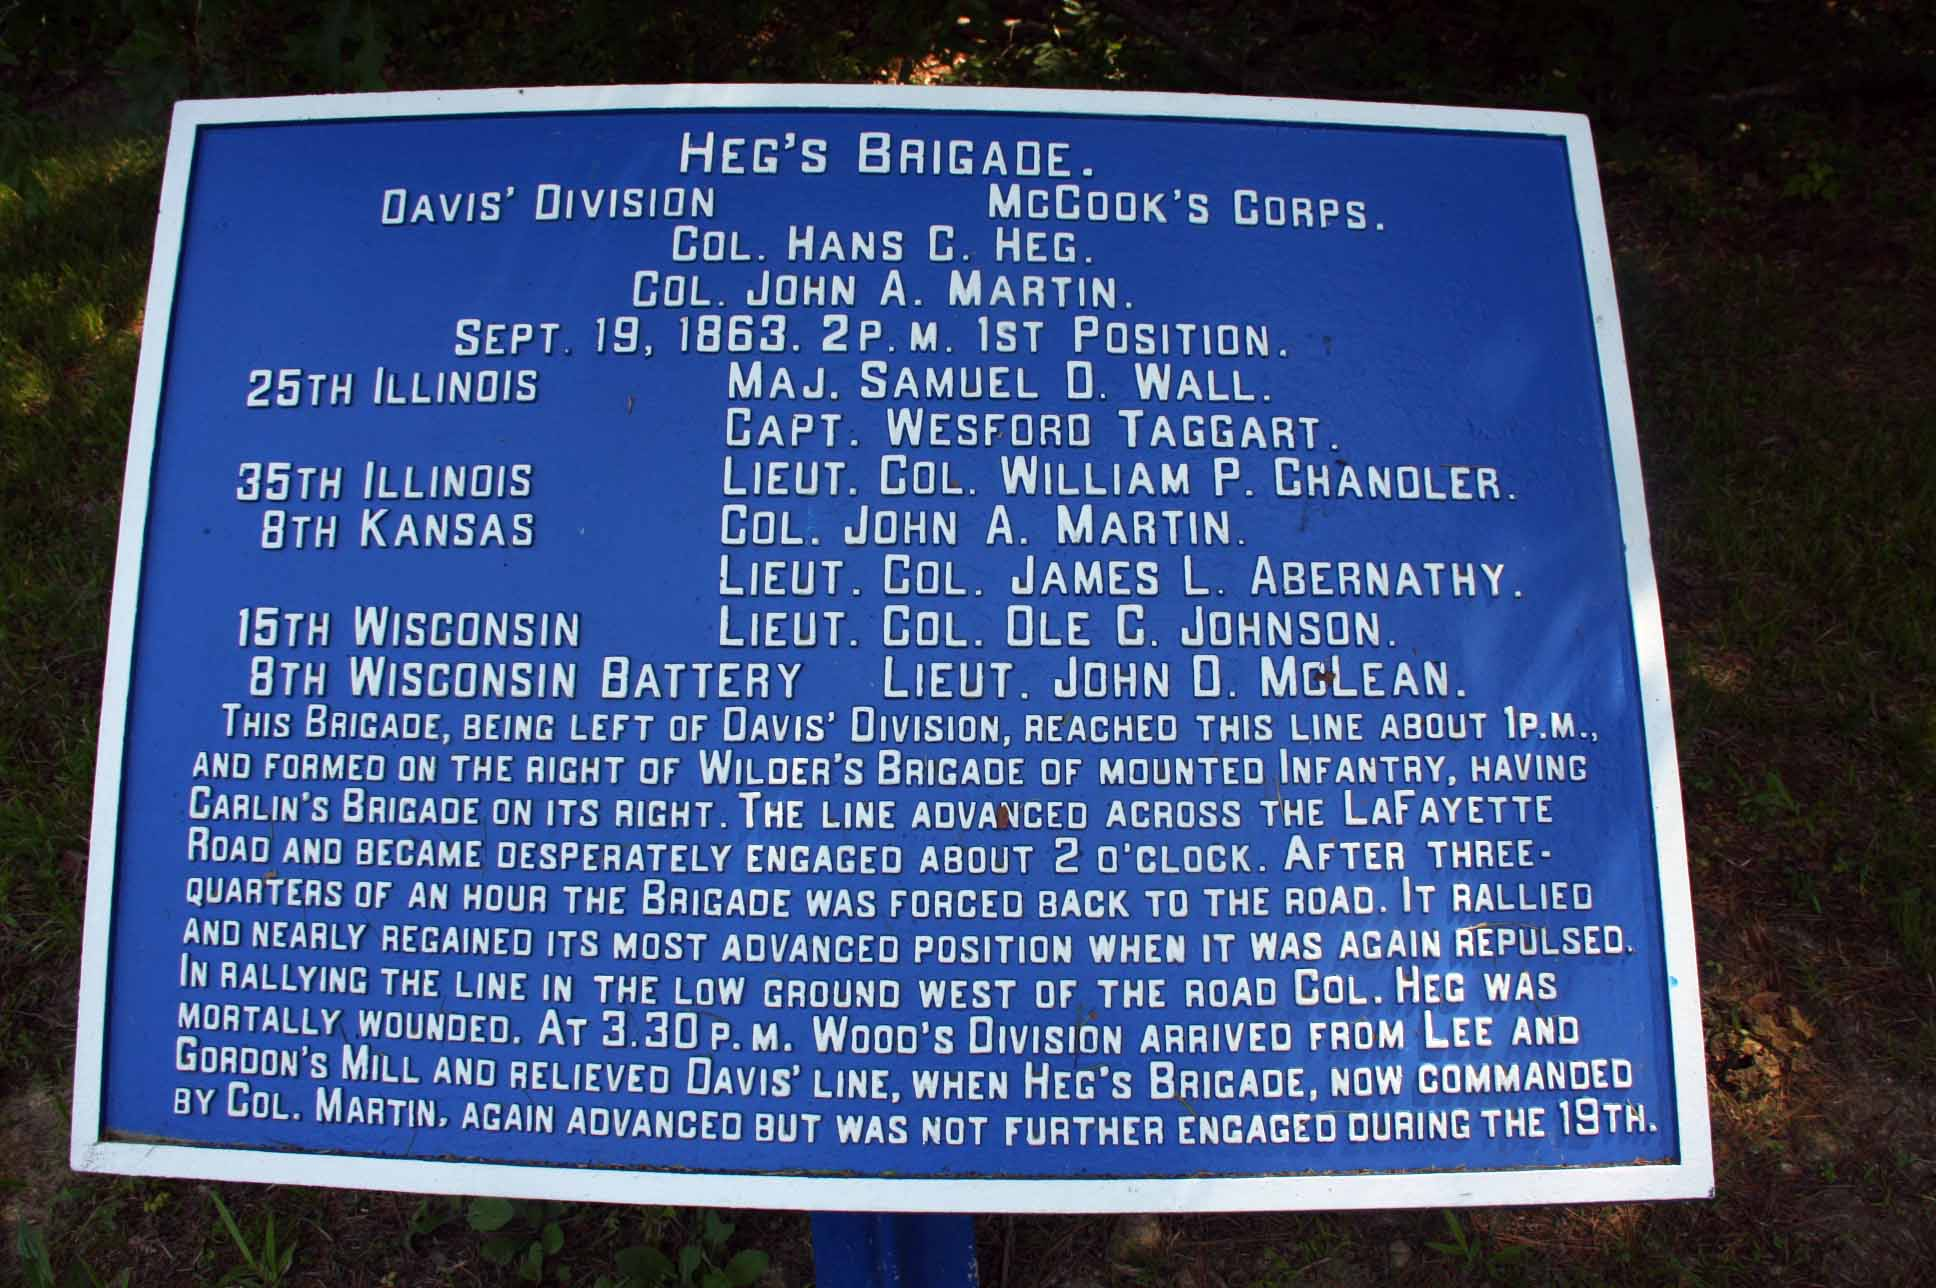 Heg's Brigade Tablet, click photo to enlarge.